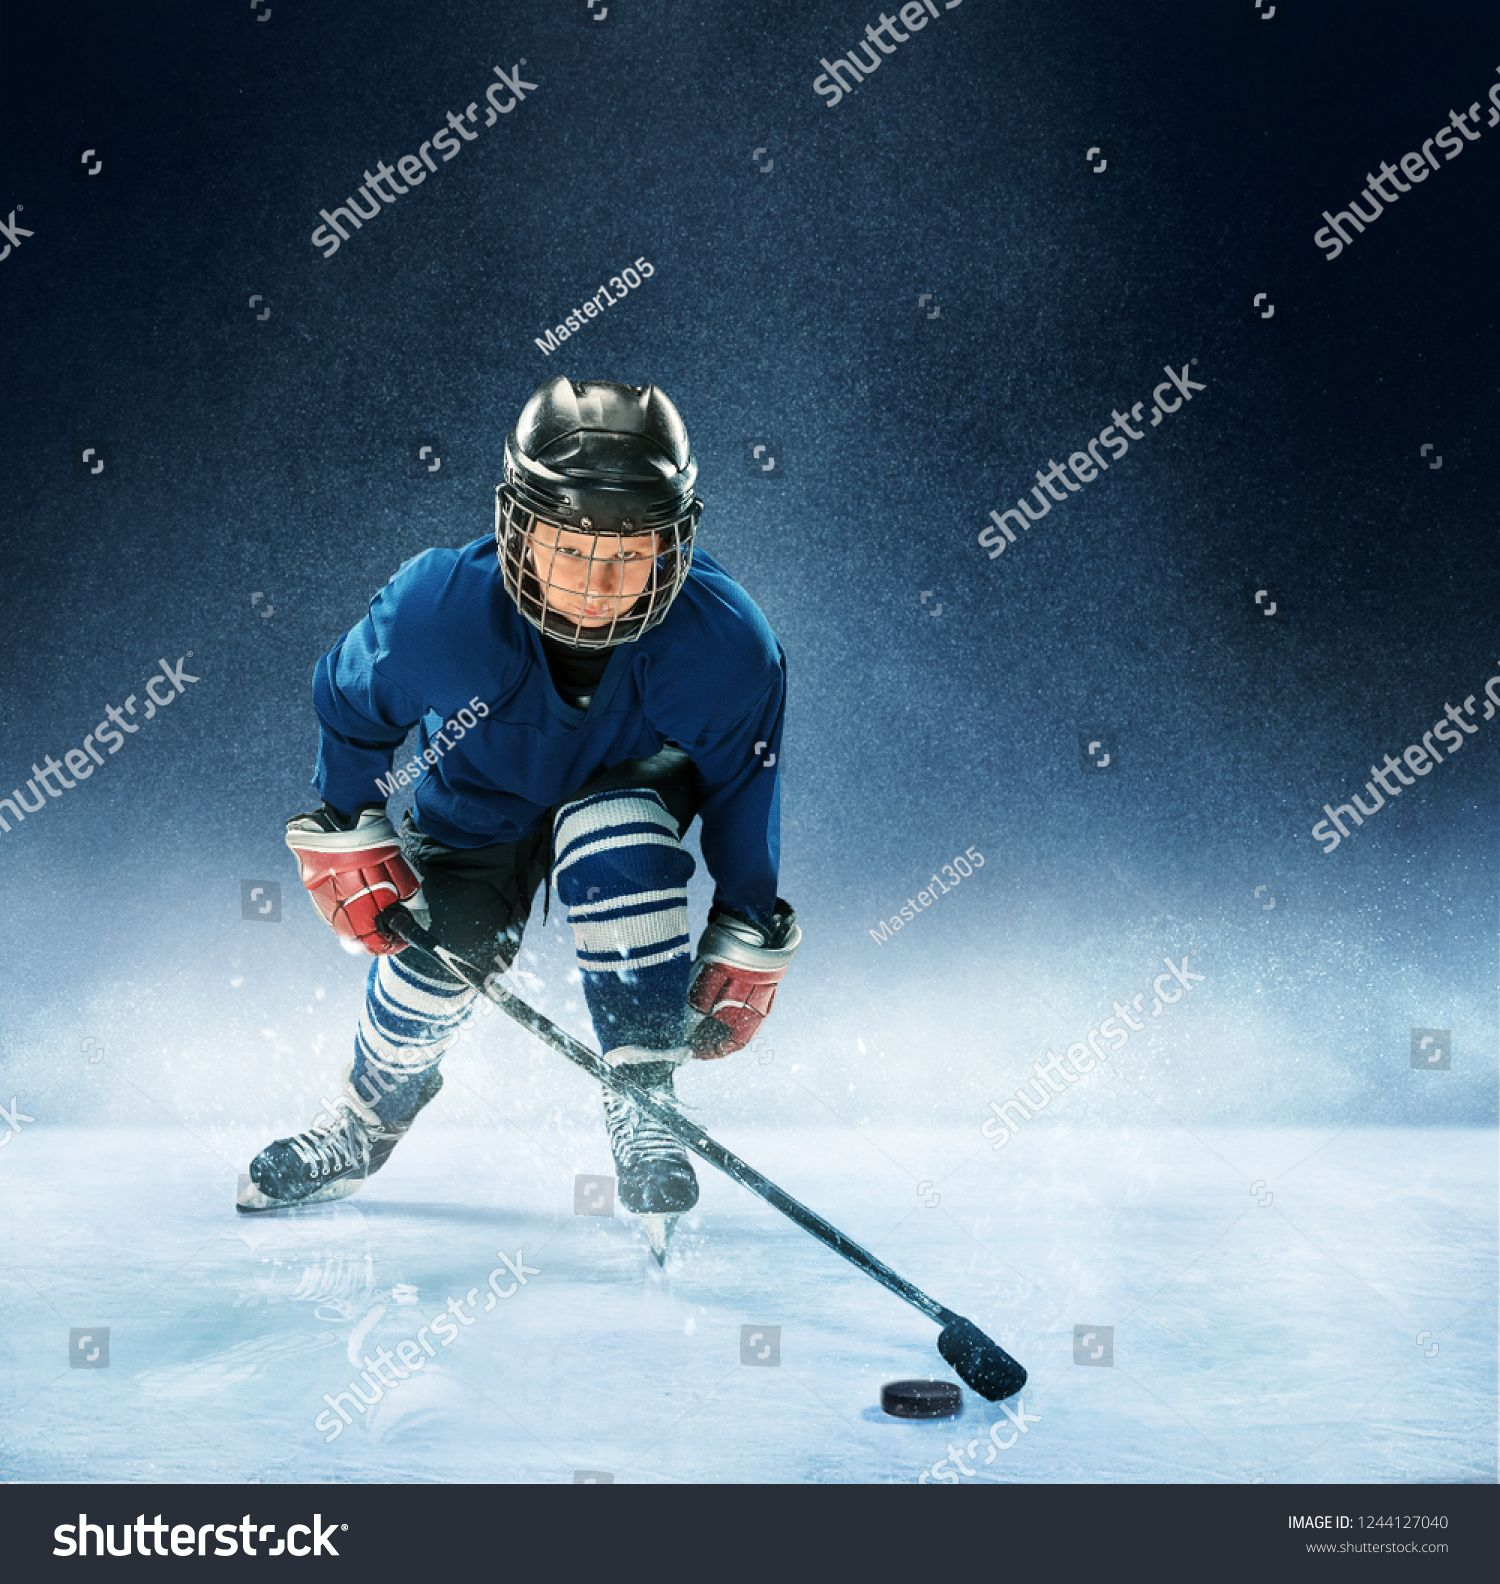 Little boy playing ice hockey at arena A hockey player in uniform with equipment over a blue background The athlete child sport action concept